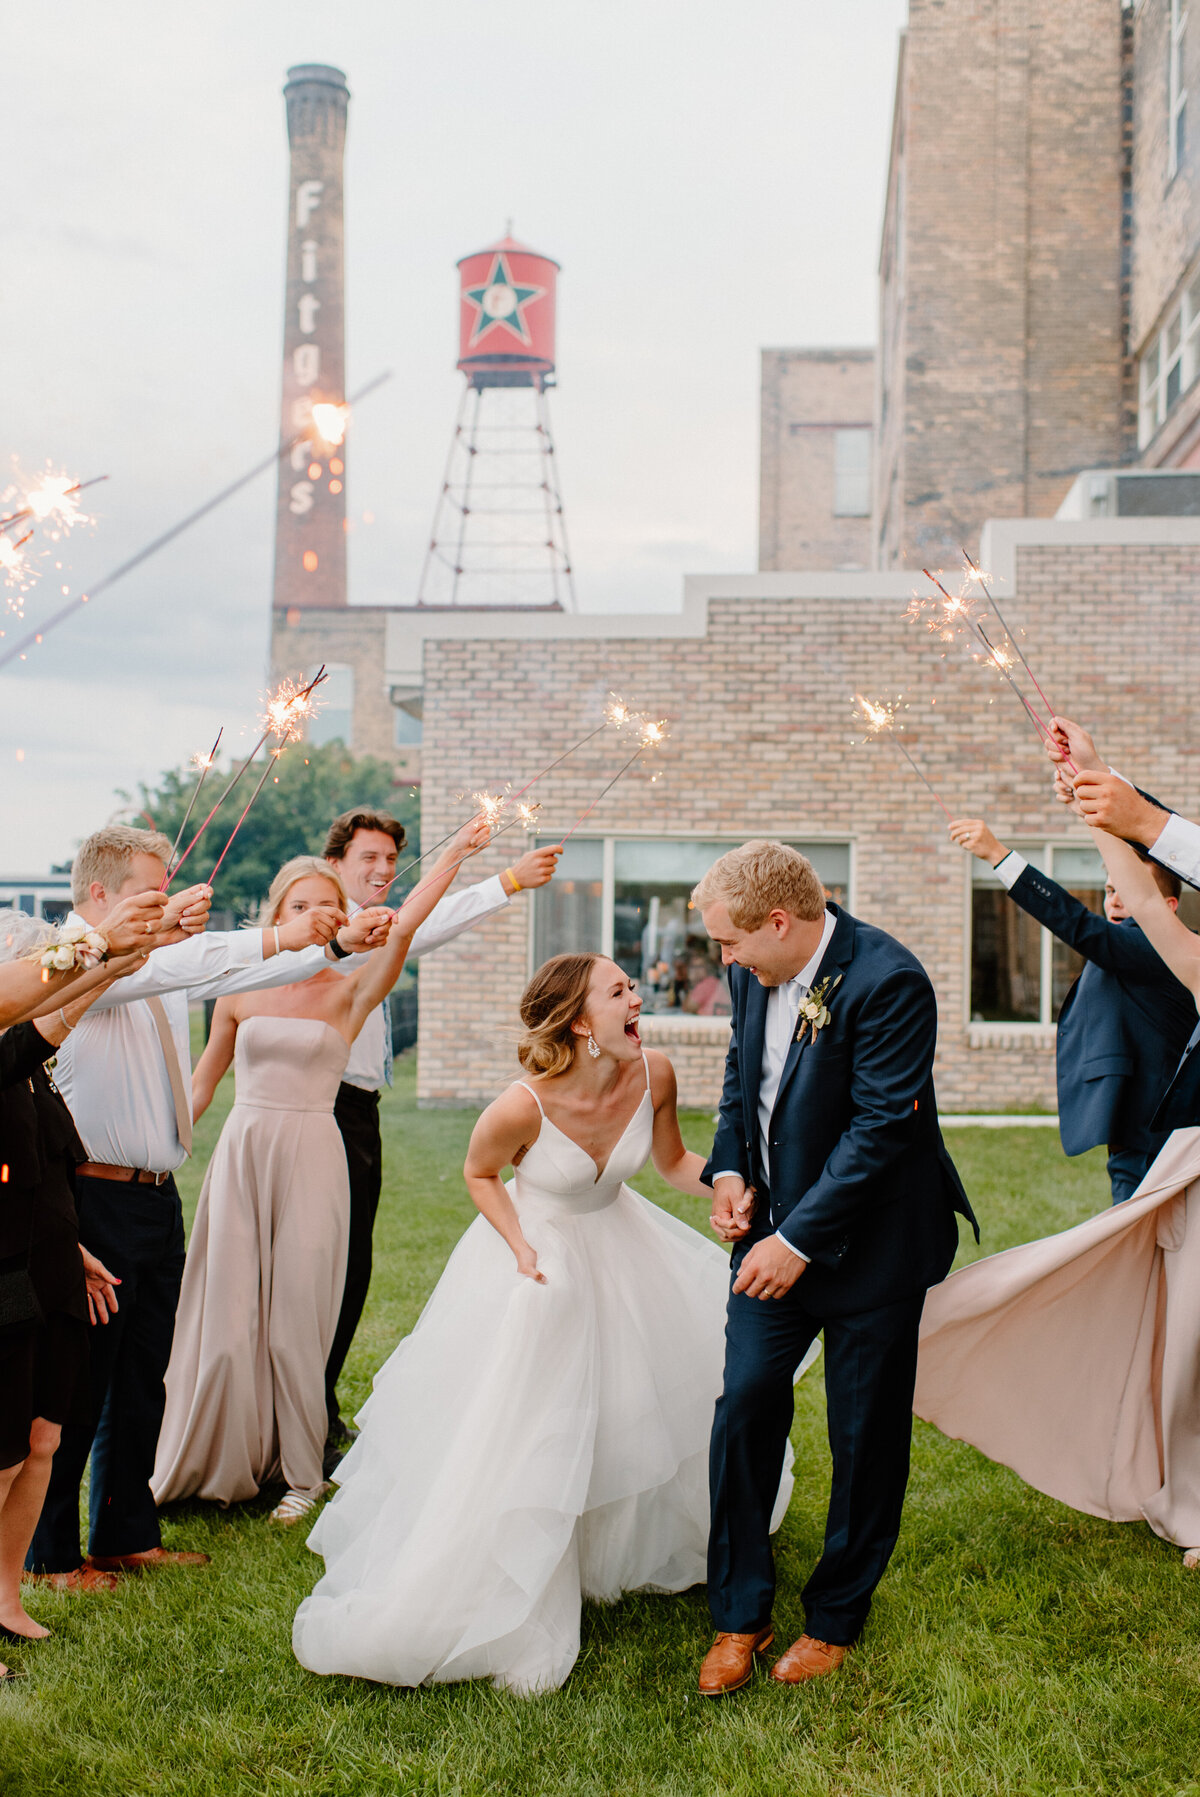 kylee-brian-wedding-sparklers-6